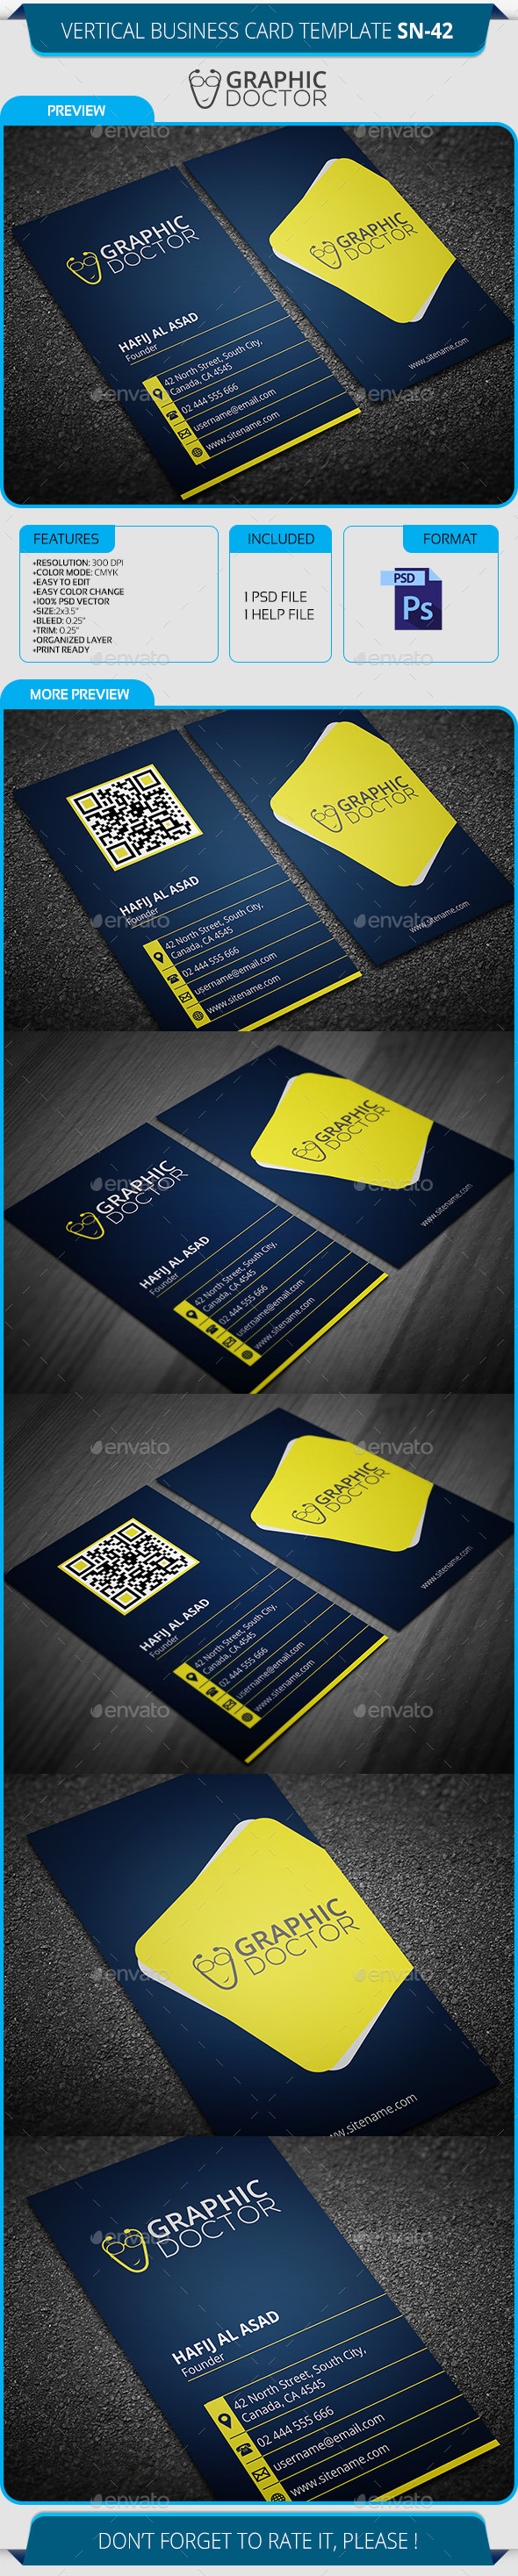 GraphicRiver Vertical Business Card Template SN-42 9600302